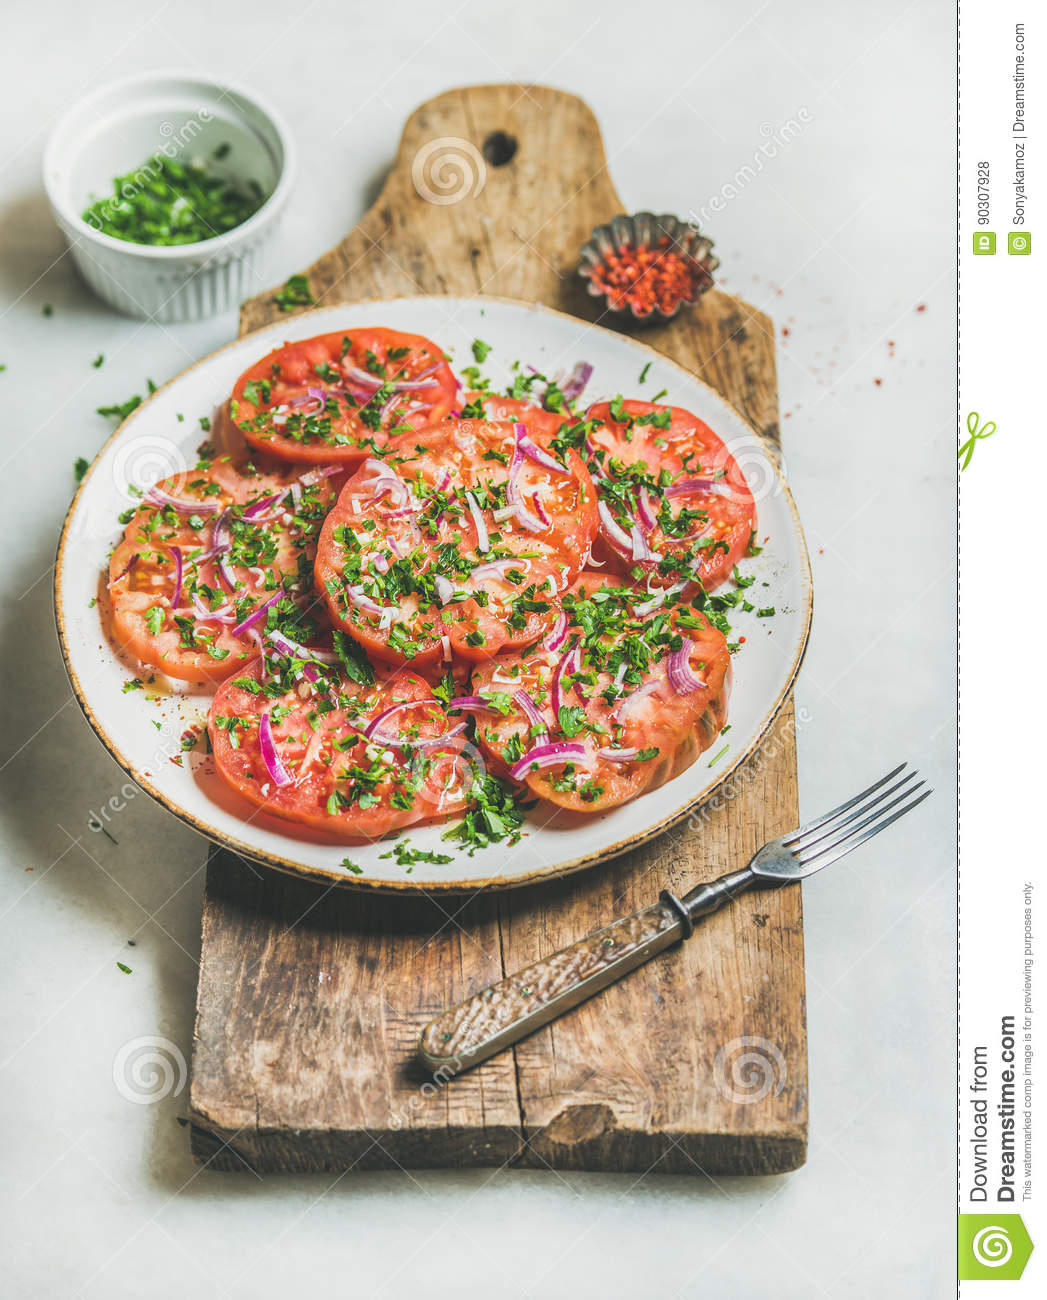 Fresh heirloom tomato, parsley and onion salad. Clean eating food